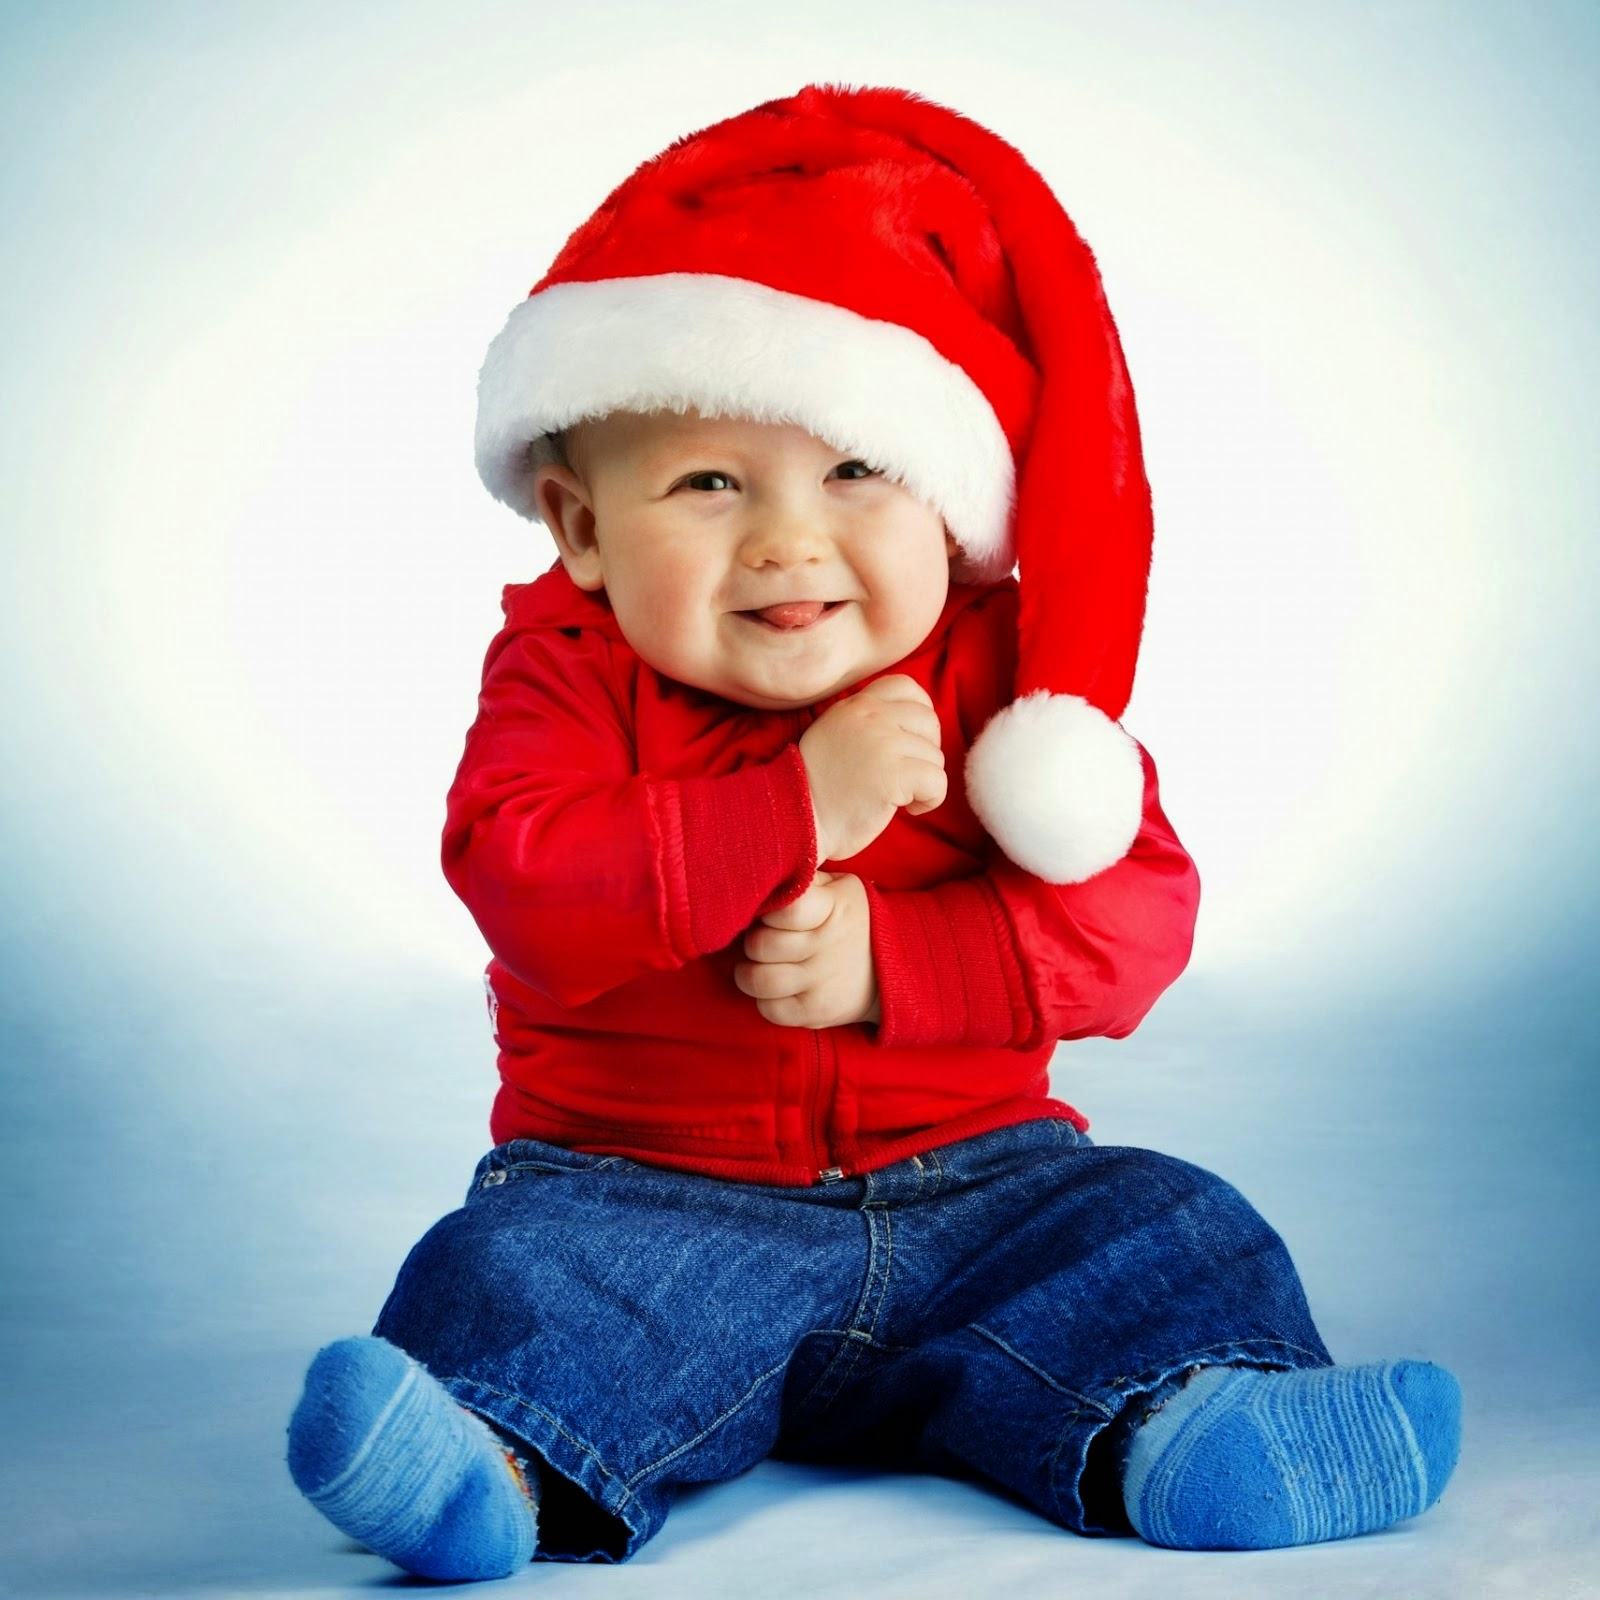 ♥ ♫ ♥ So Cute Happy Baby Christmas ♥ ♫ ♥